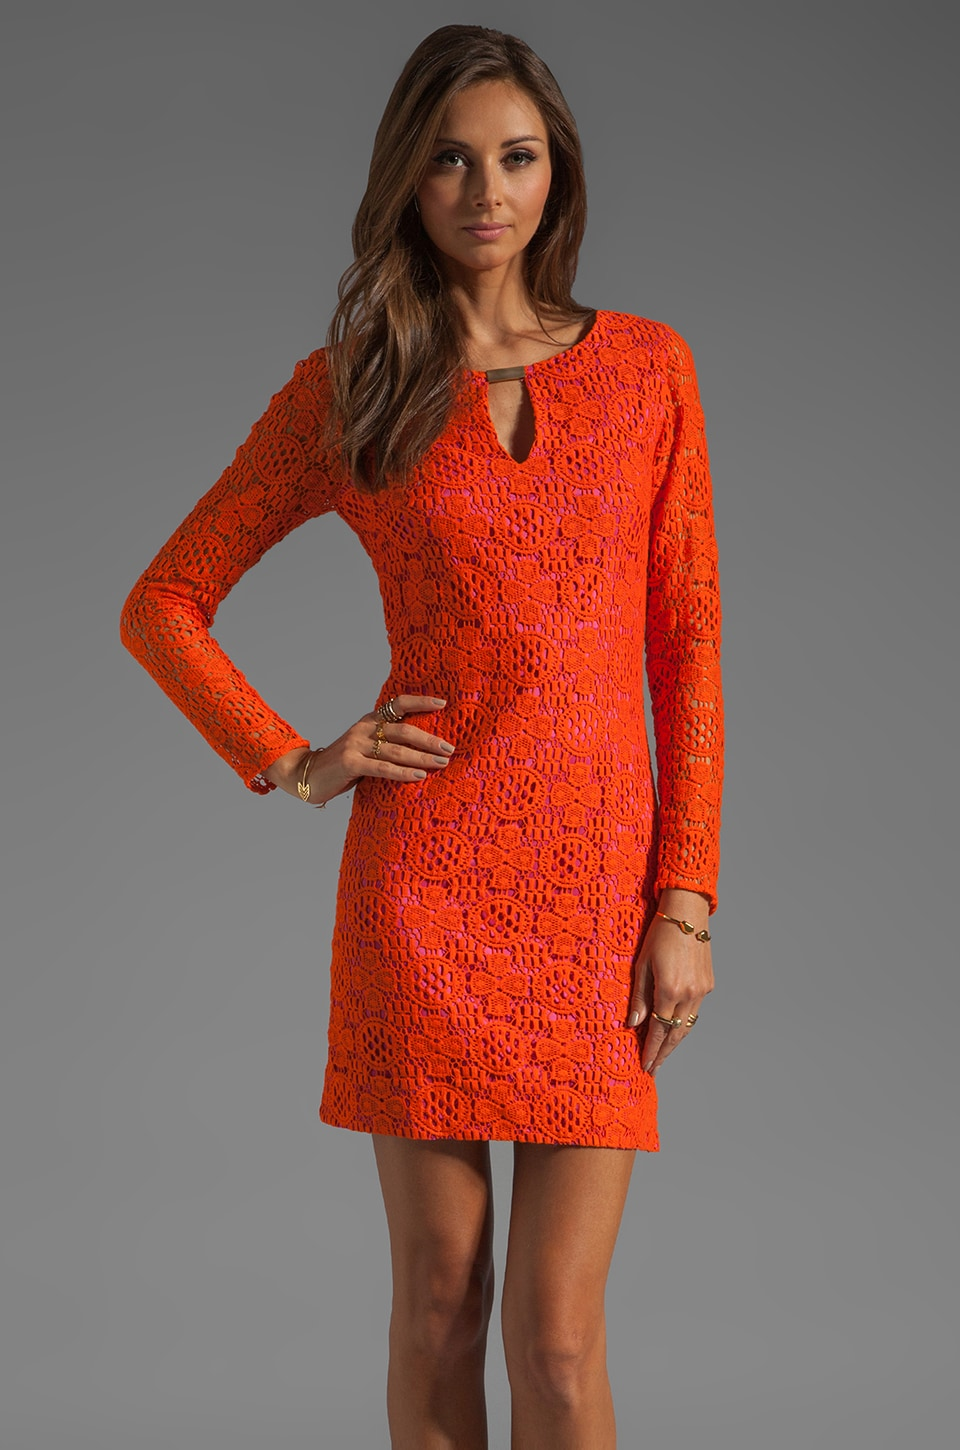 Trina Turk Boardwalk Lace Crandon Dress in Sunset